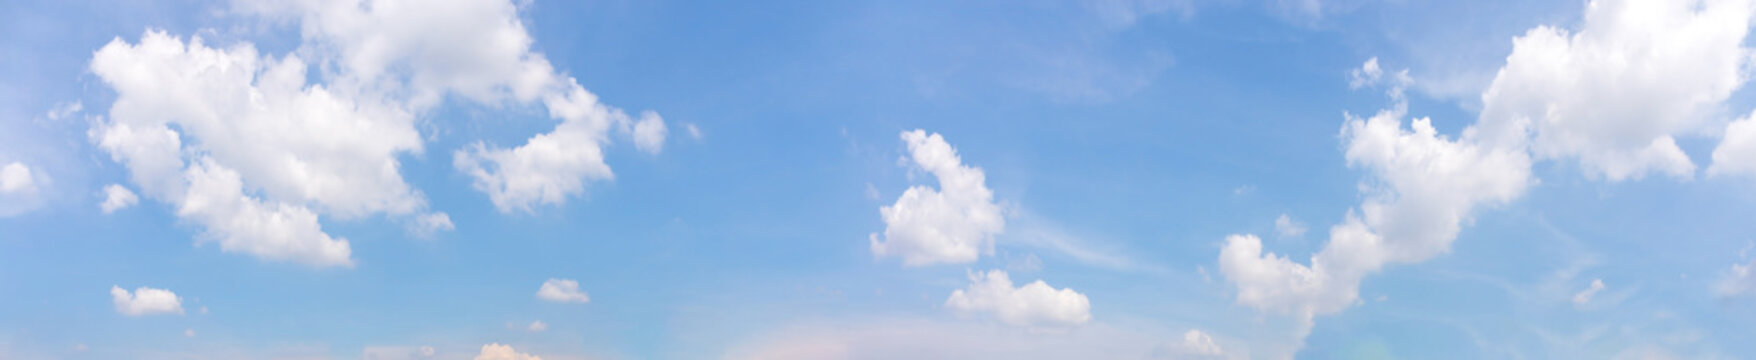 Panorama or panoramic photo of blue sky and white clouds or cloudscape.